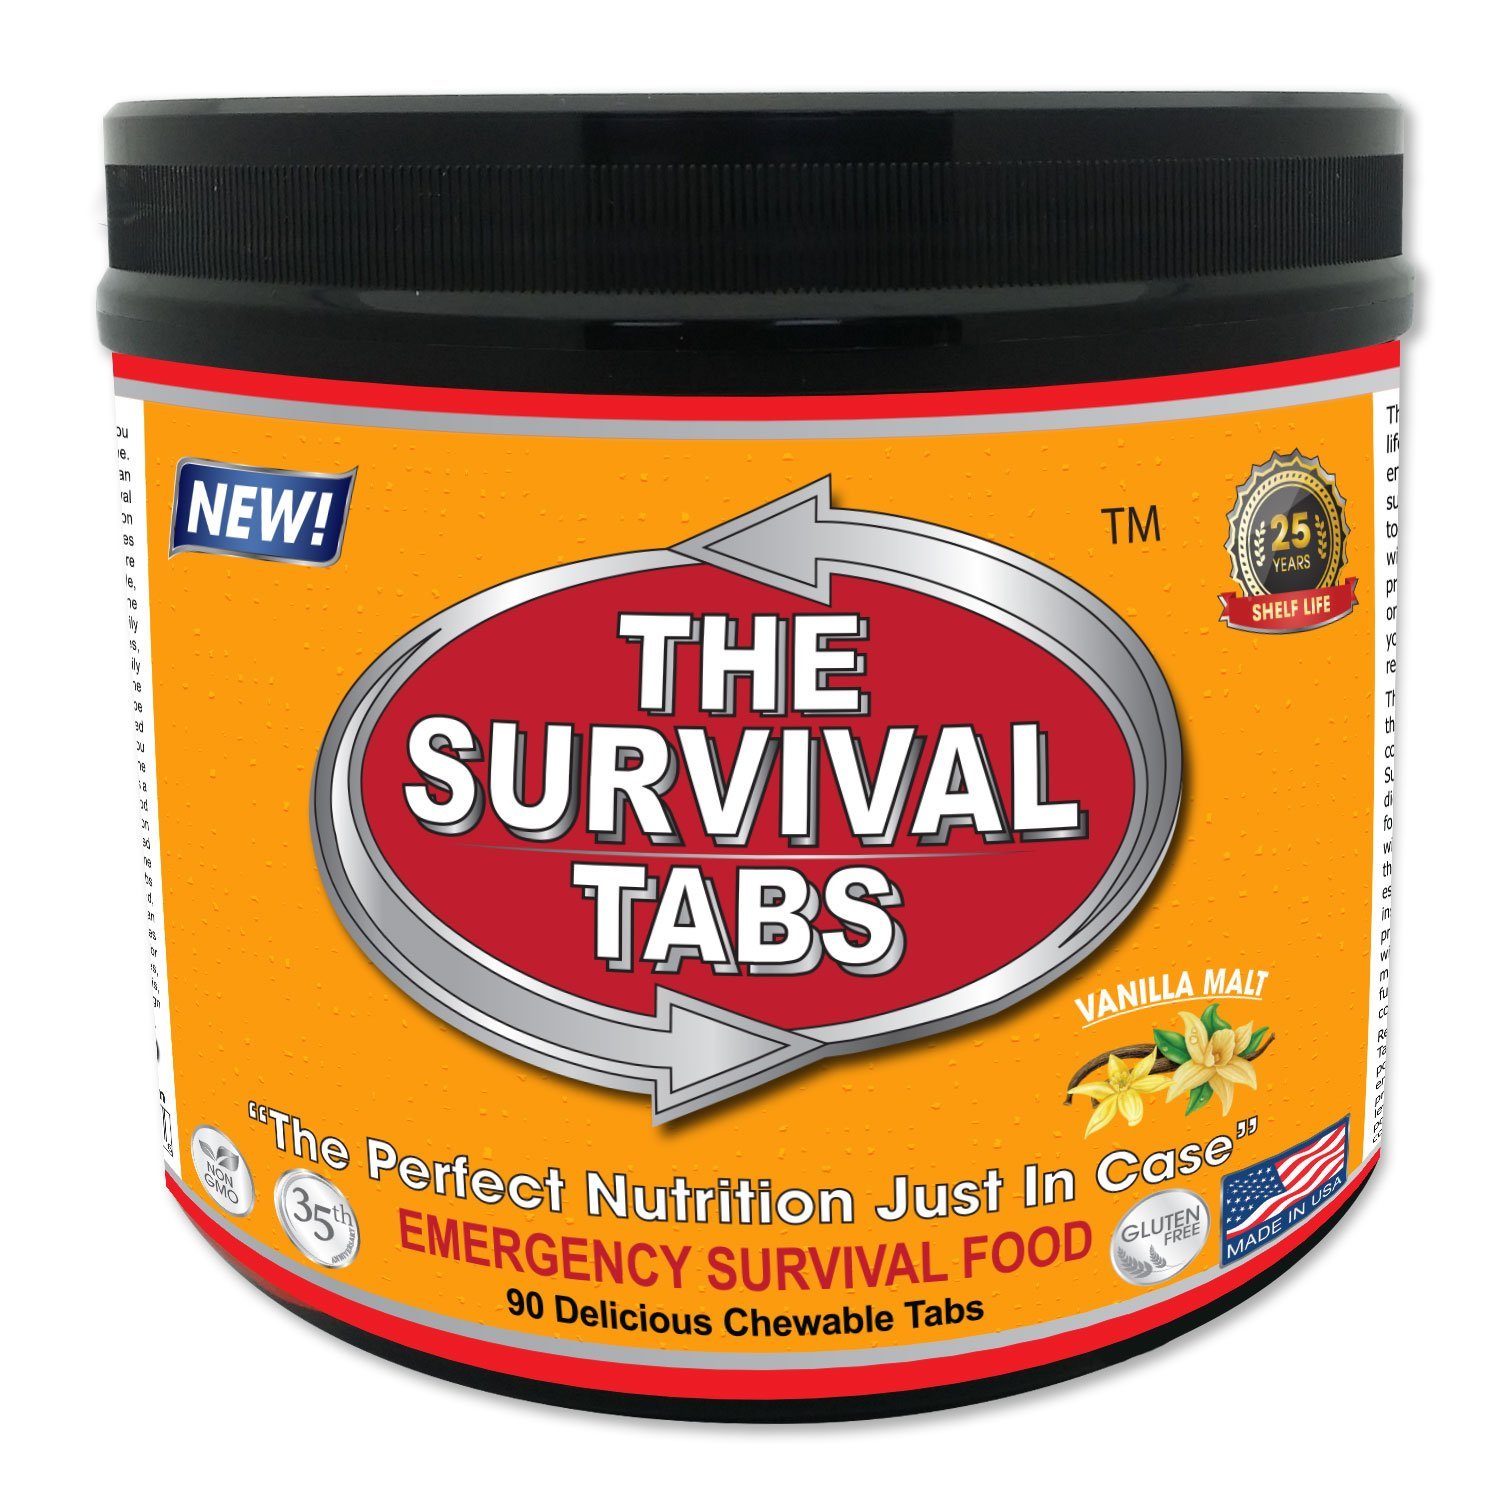 90 tabs Survival Tabs 7-day Emergency Survival MREs Meals Ready-to-eat Bugout for Travel Camping Boating Biking Hunting Activities Gluten Free and Non-GMO 25 Years Shelf Life - Vanilla Malt Flavor